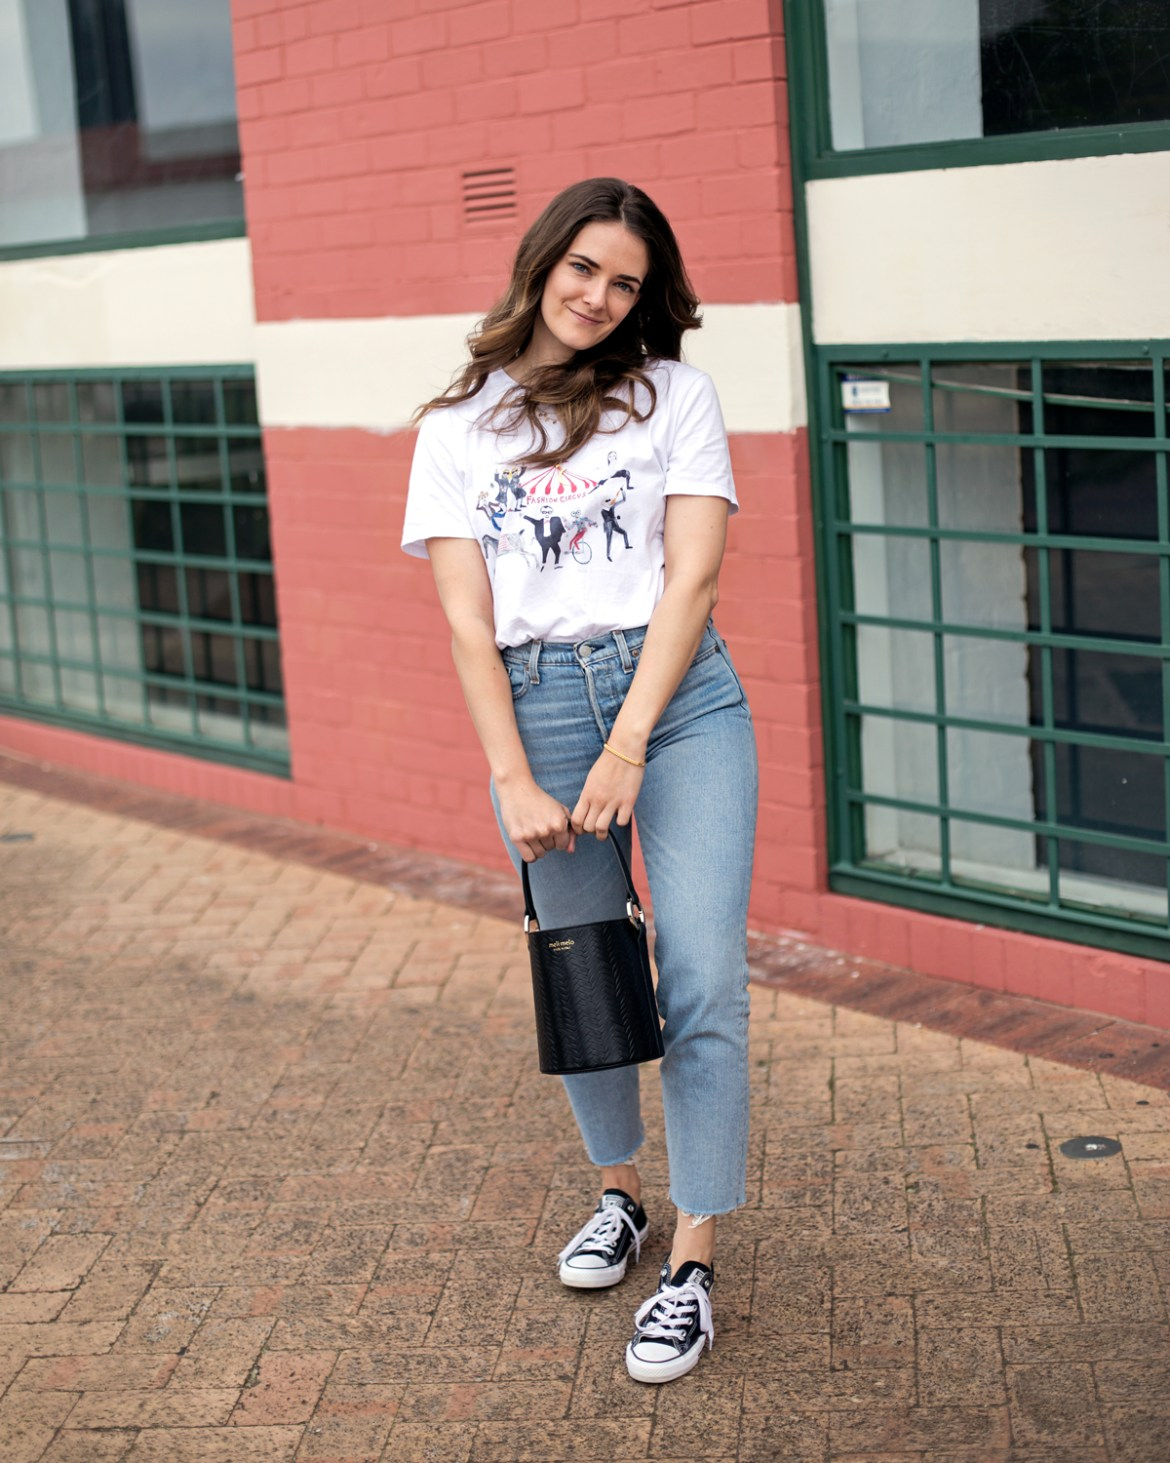 Meli Melo Santina bucket bag in black worn by fashion blogger Jenelle Witty from Inspiring Wit. With Unfortunate Portrait graphic tee, Levi's Wedgie jeans and Converse sneakers from Shopbop